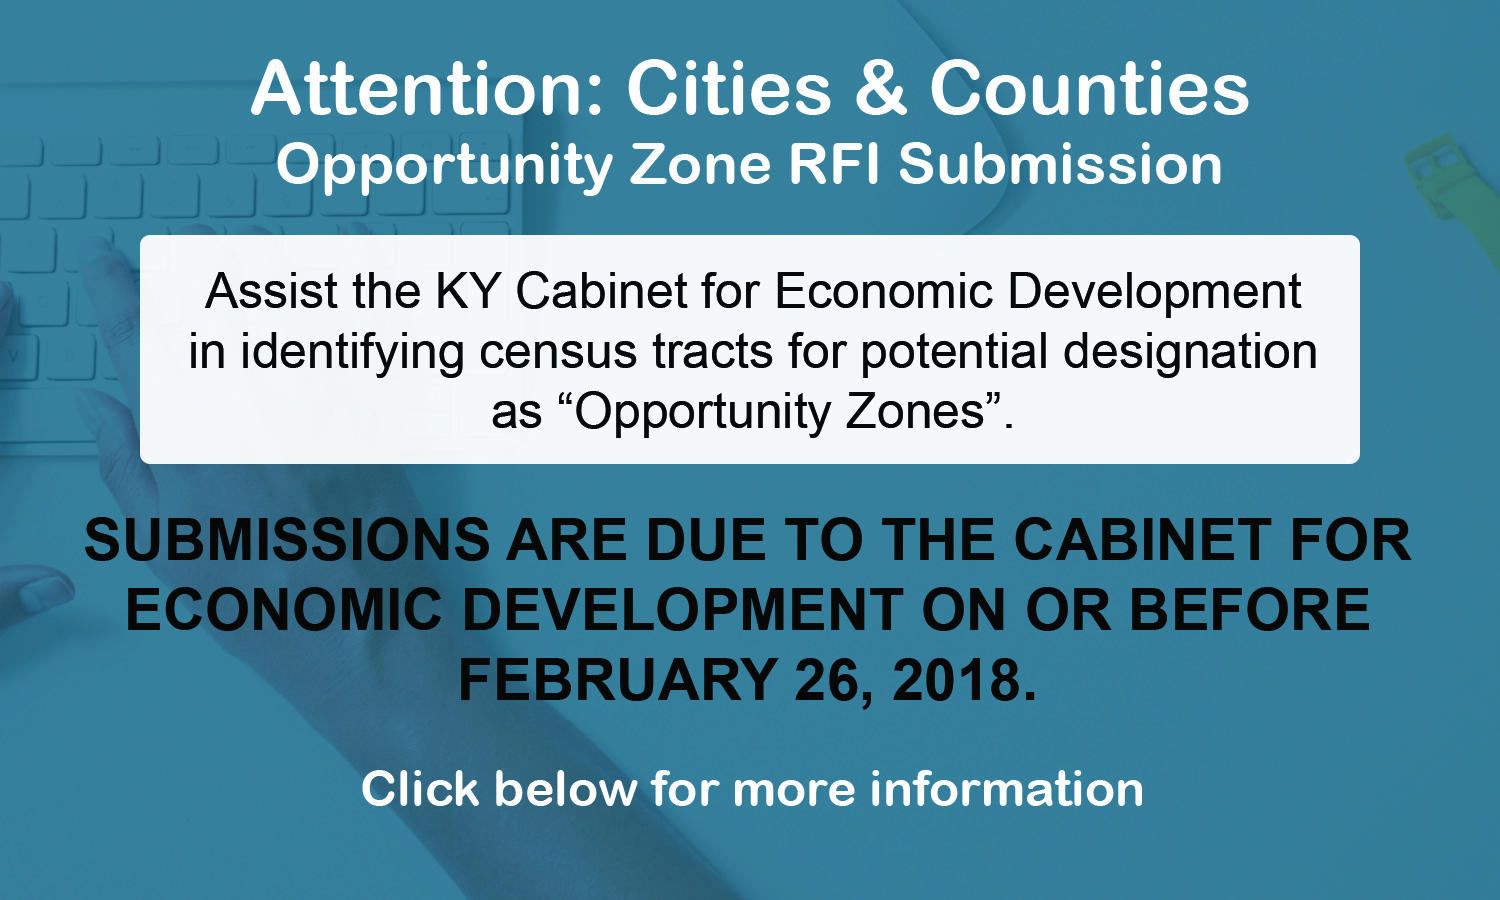 Opportunity Zone RFI Submission